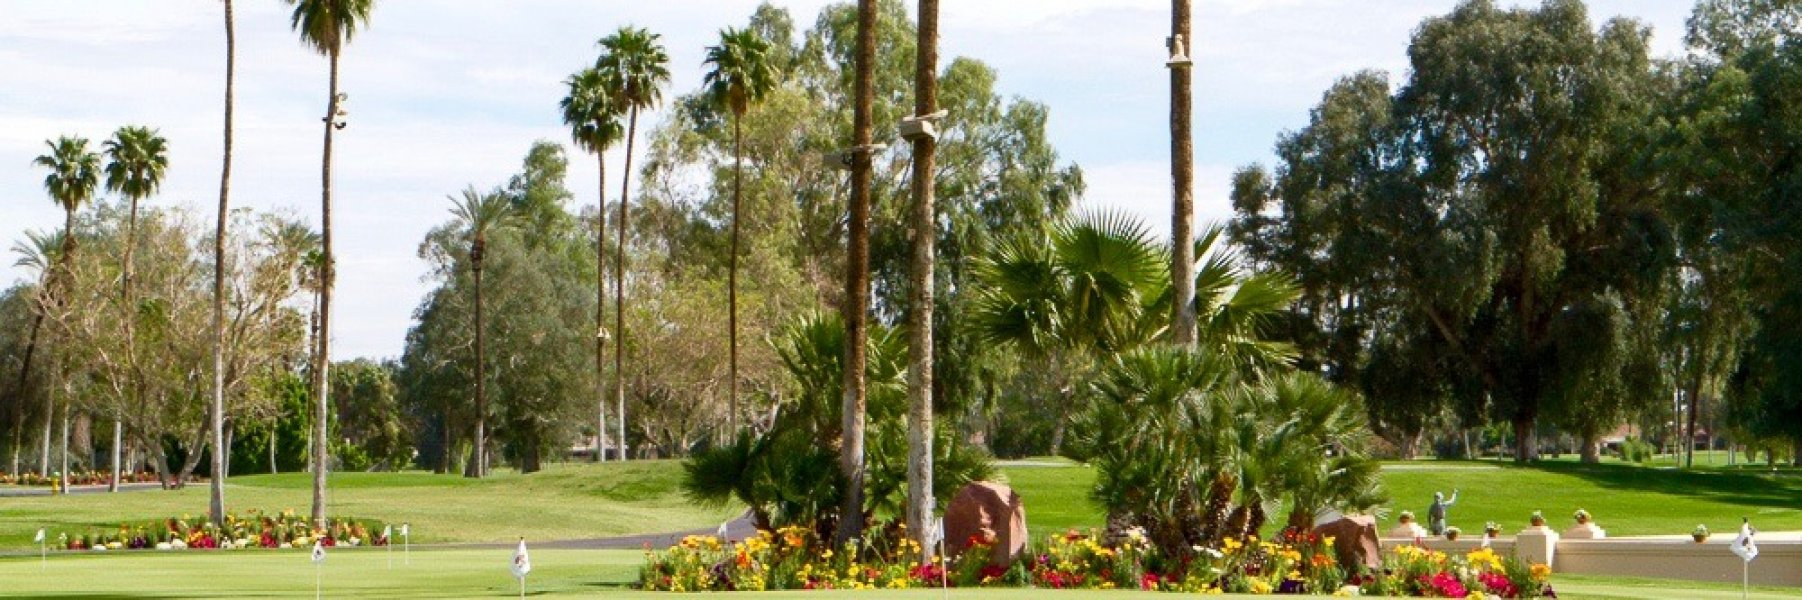 Mission Hills Lakefront is a community of homes in Rancho Mirage California